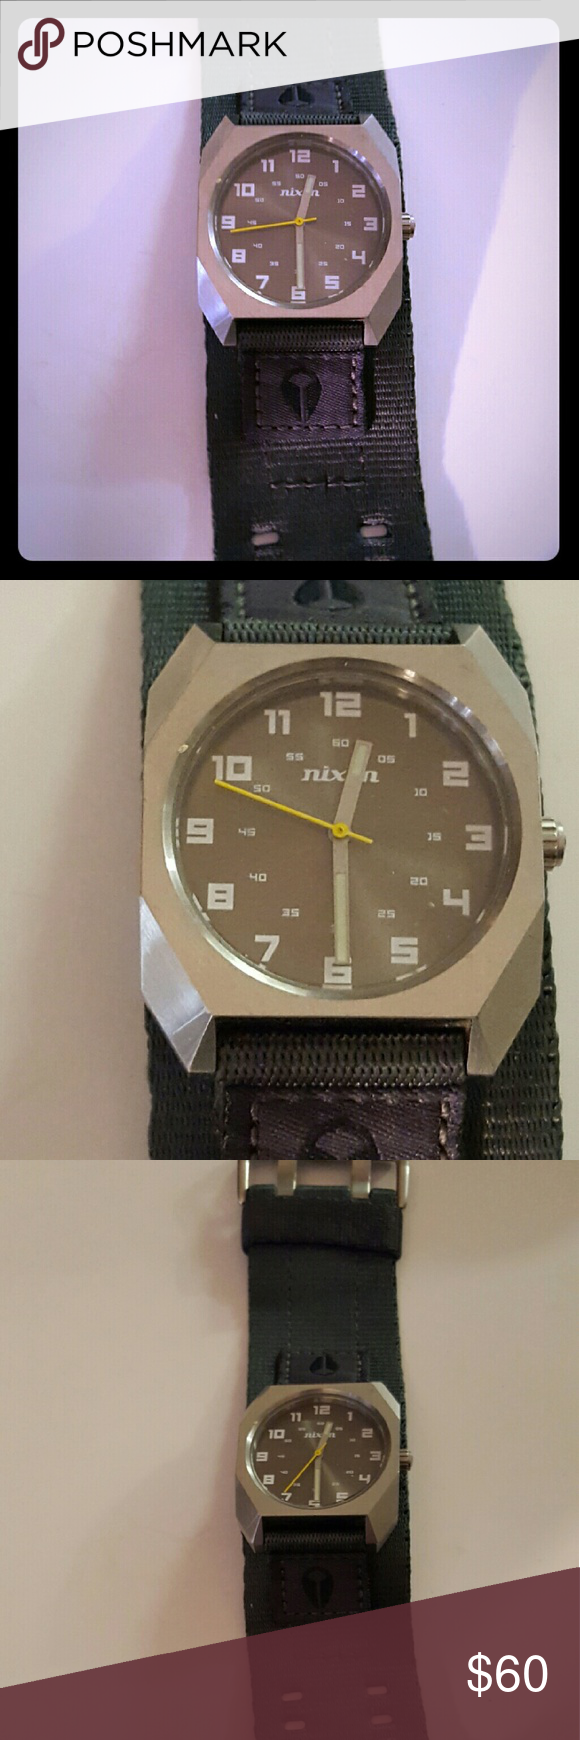 a4ad3abd2 Nixon scout watch Grey nixon scout watch great watch any questions please  feel free to ask Nixon Accessories Watches